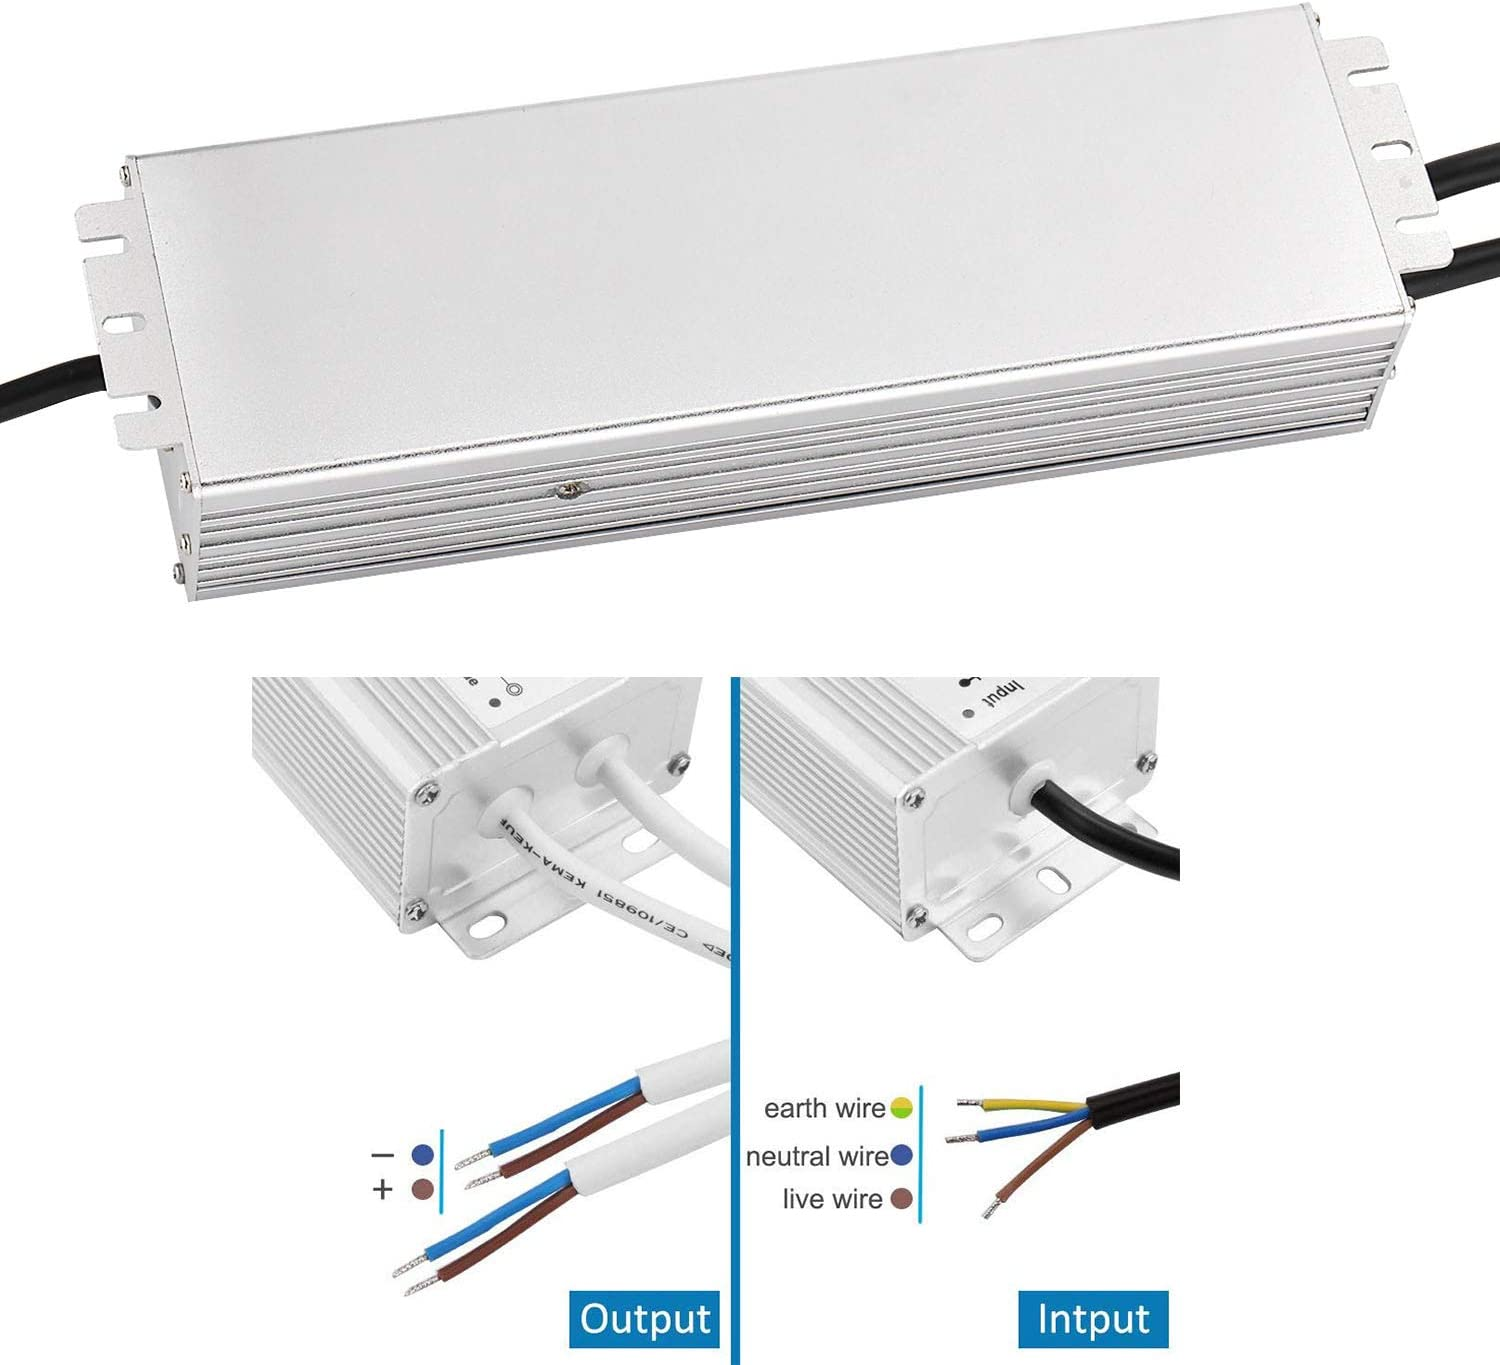 CPROSP LED Transformer 12V 300W 25A IP67 Waterproof Low Voltage LED Driver Transformer Form 230V AC to 12V DC Universal Power Supply Indoor Outdoor Adapter for LED Strip and Bulb